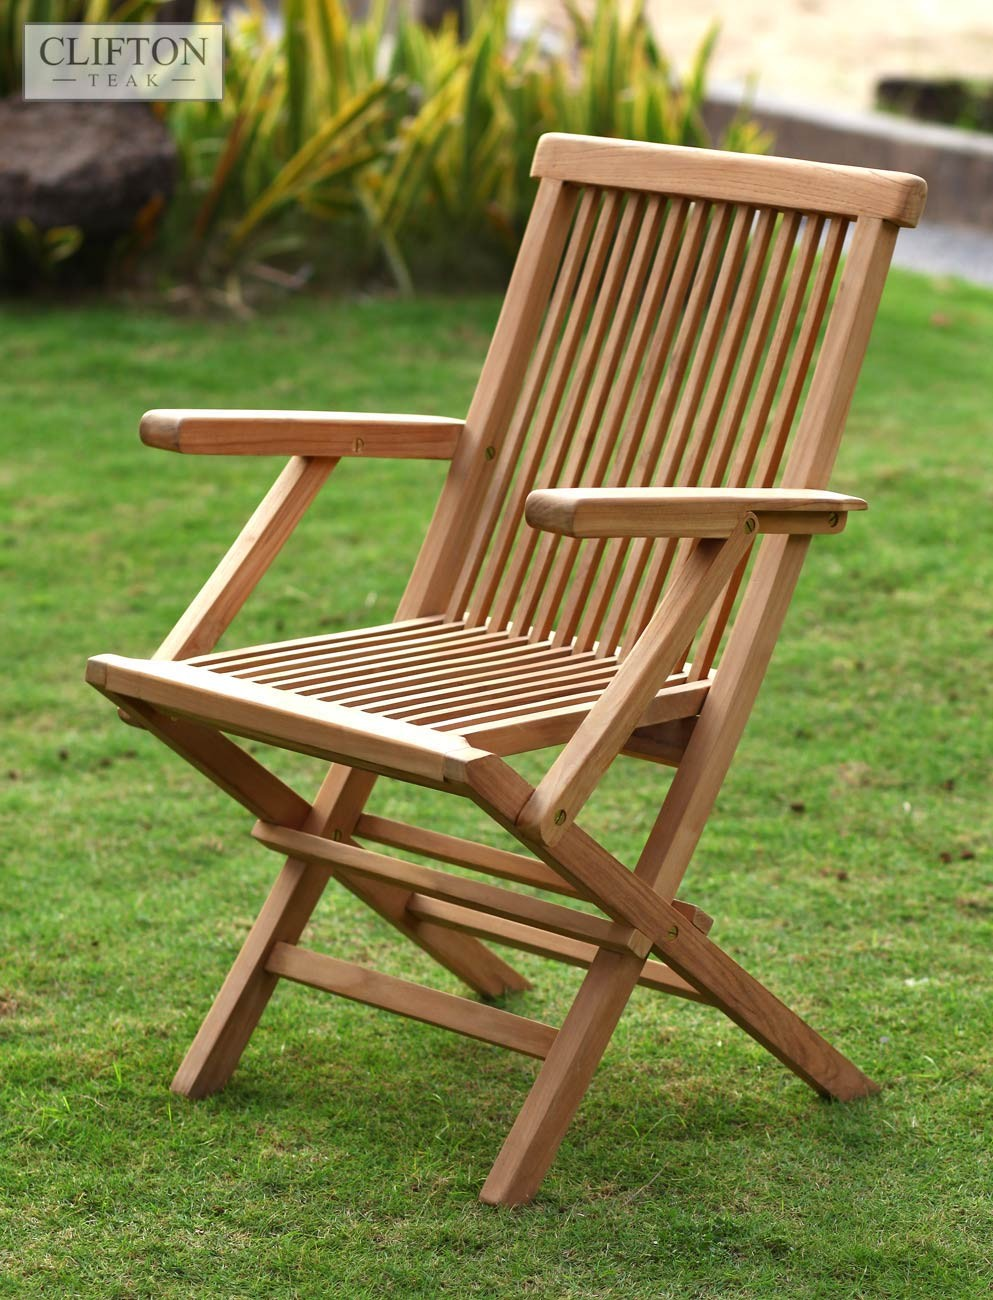 folding chair uk wood beach light coloured teak armchair folds flat for storage casa wiltshire 1